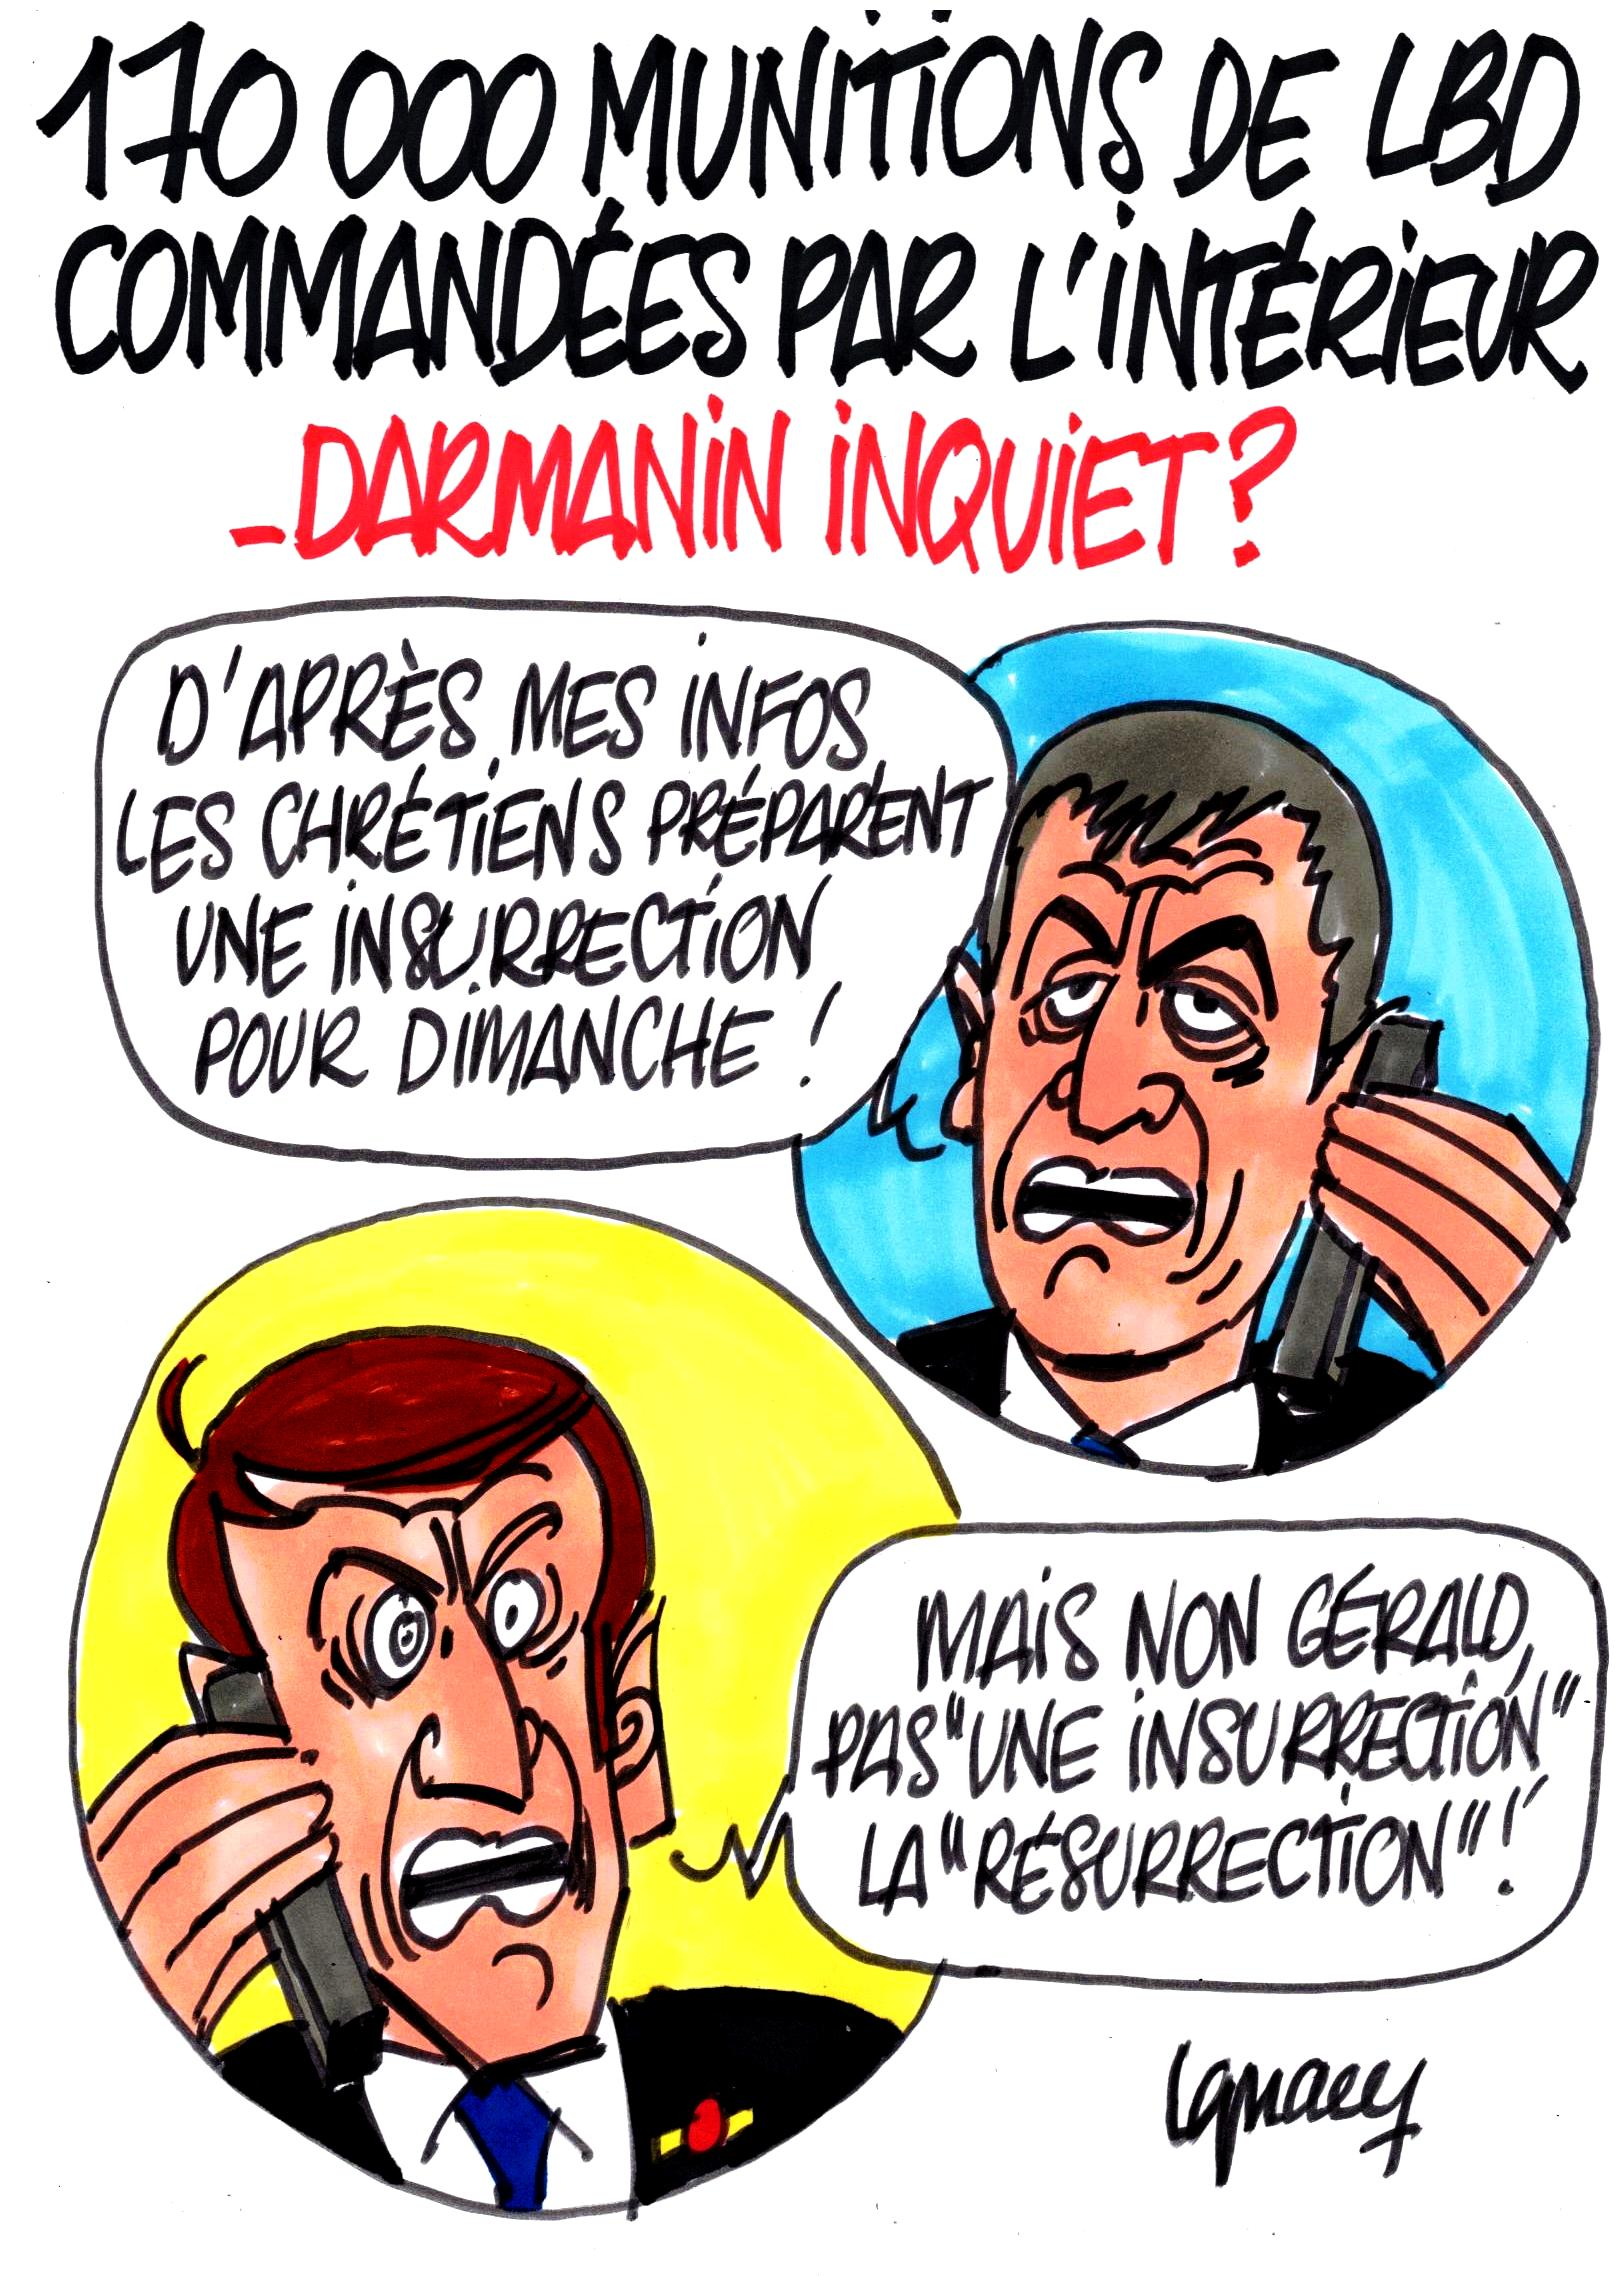 Ignace - 170000 munitions de LBD commandées par Darmanin